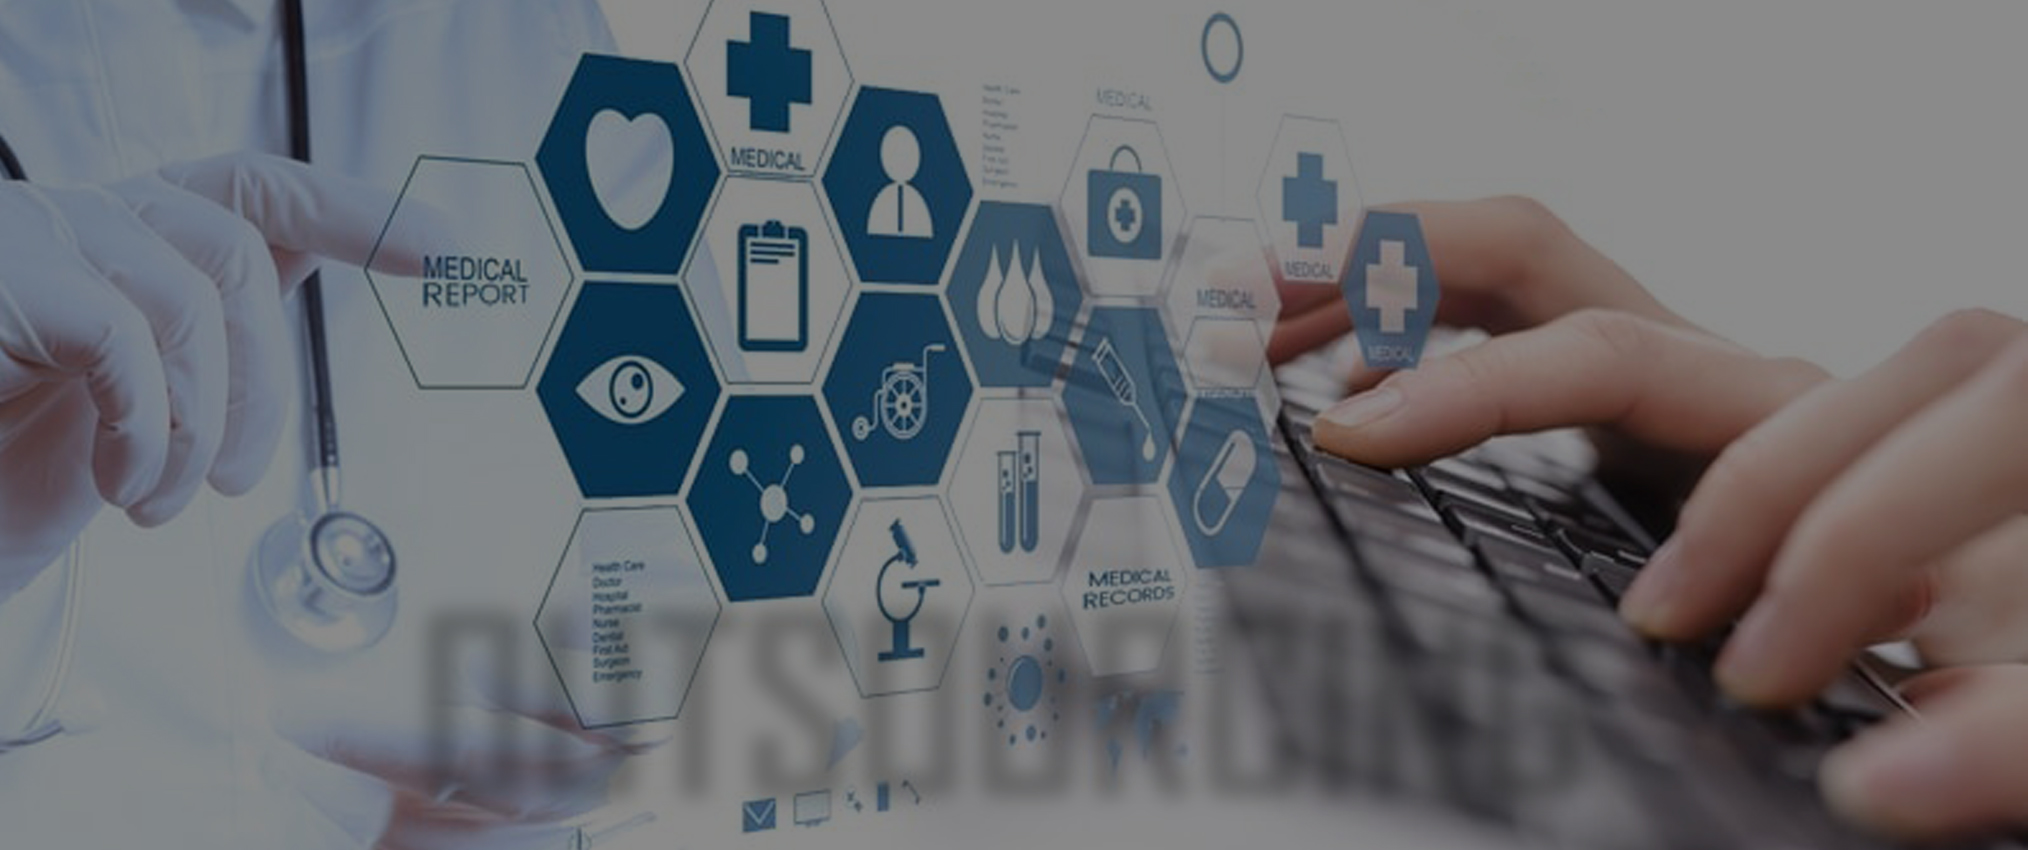 outsourcing healthcare data entry